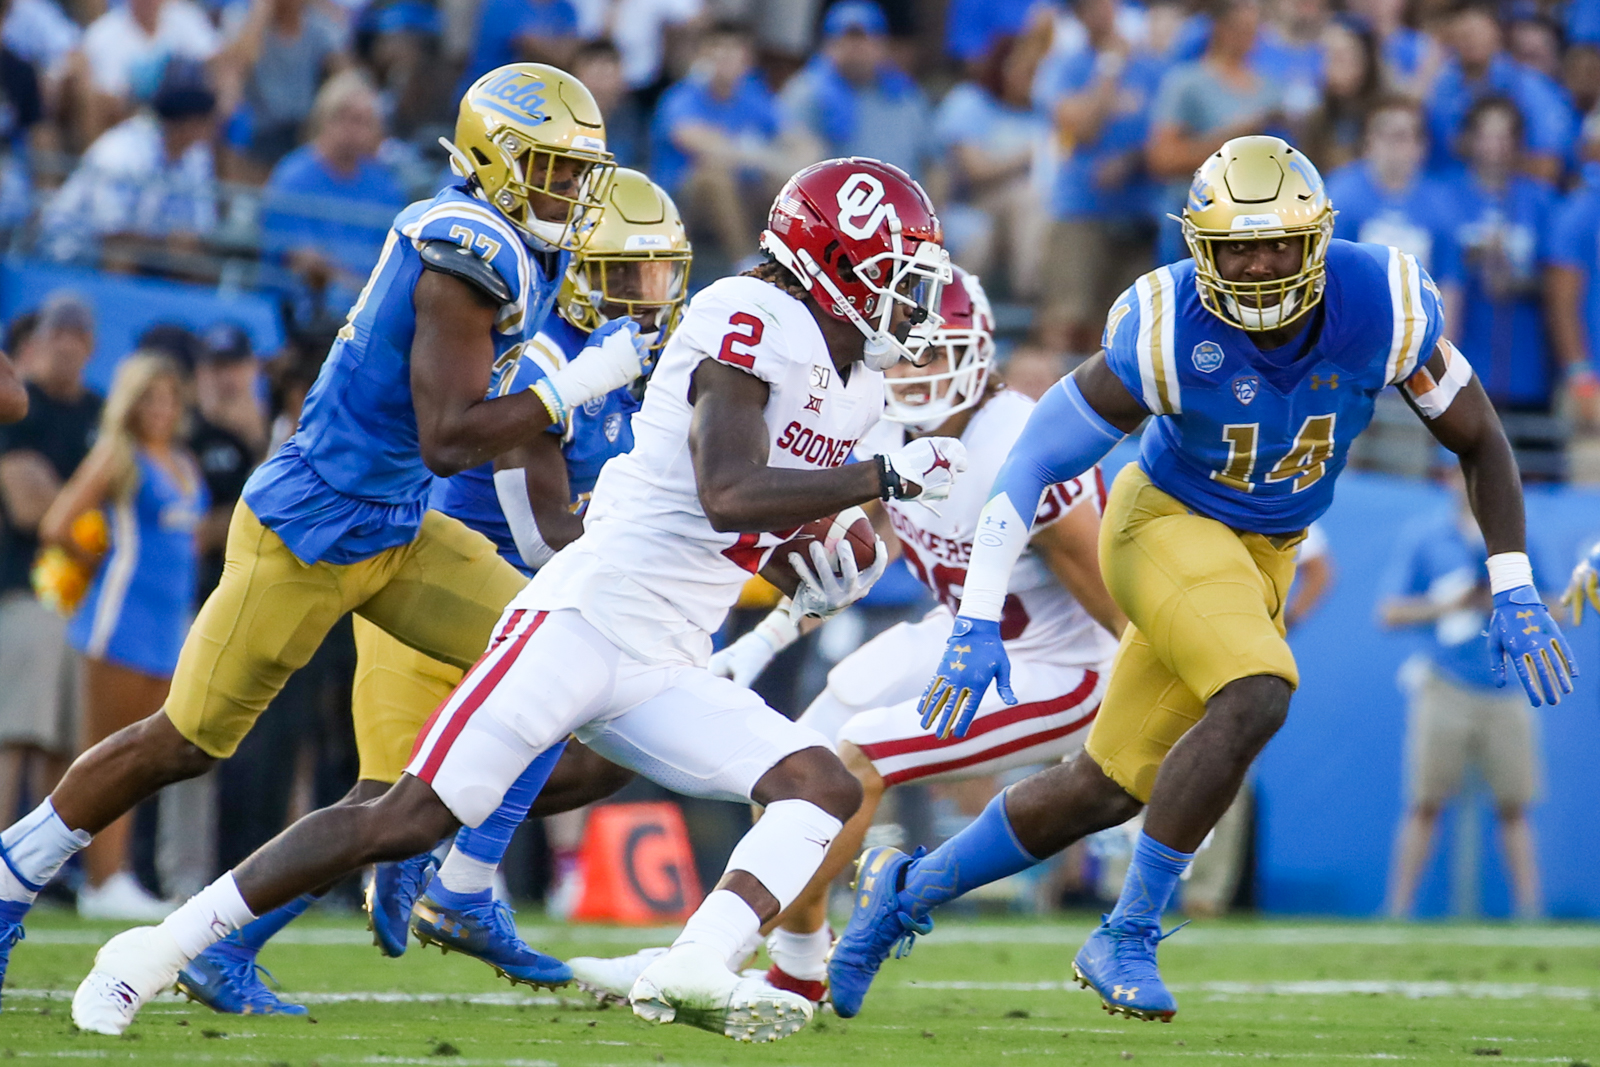 Oklahoma Sooners wide receiver CeeDee Lamb (2); Oklahoma defeated UCLA 48-14, Sept 14, 2019, Pasadena, CA.